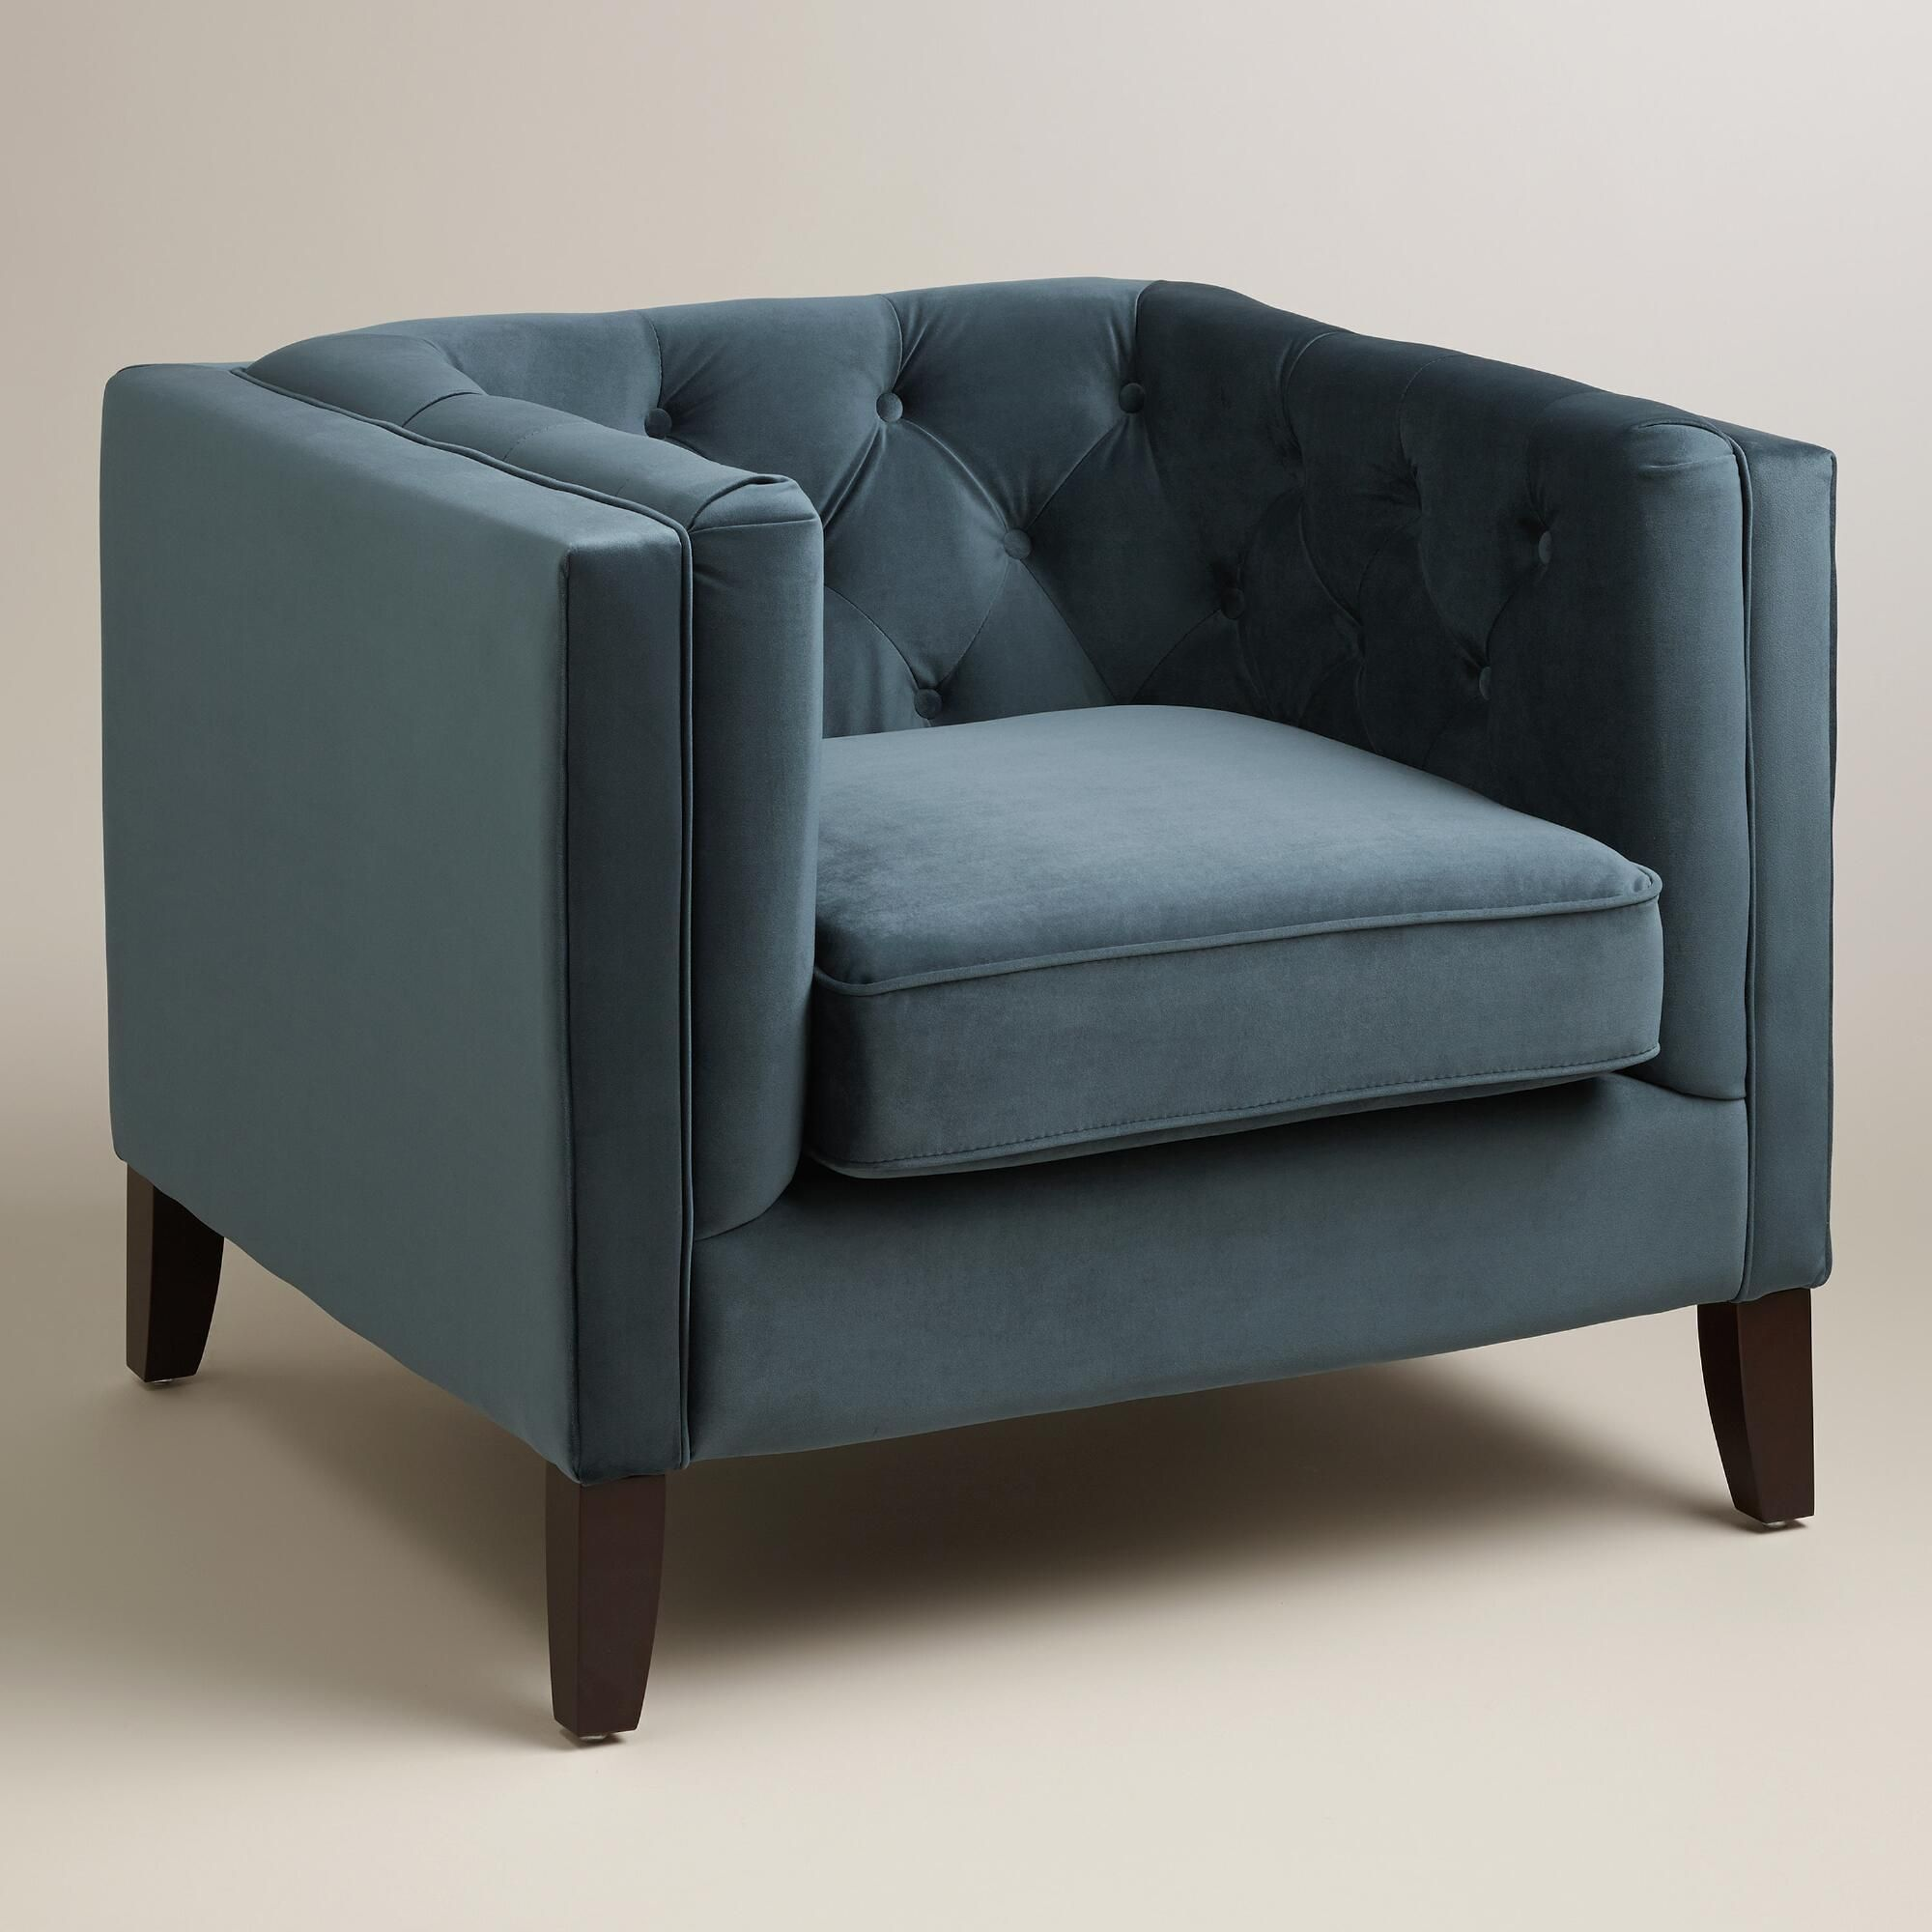 Midnight Blue Living Room: Full Of Mid-century Style, Our Midnight Blue Kendall